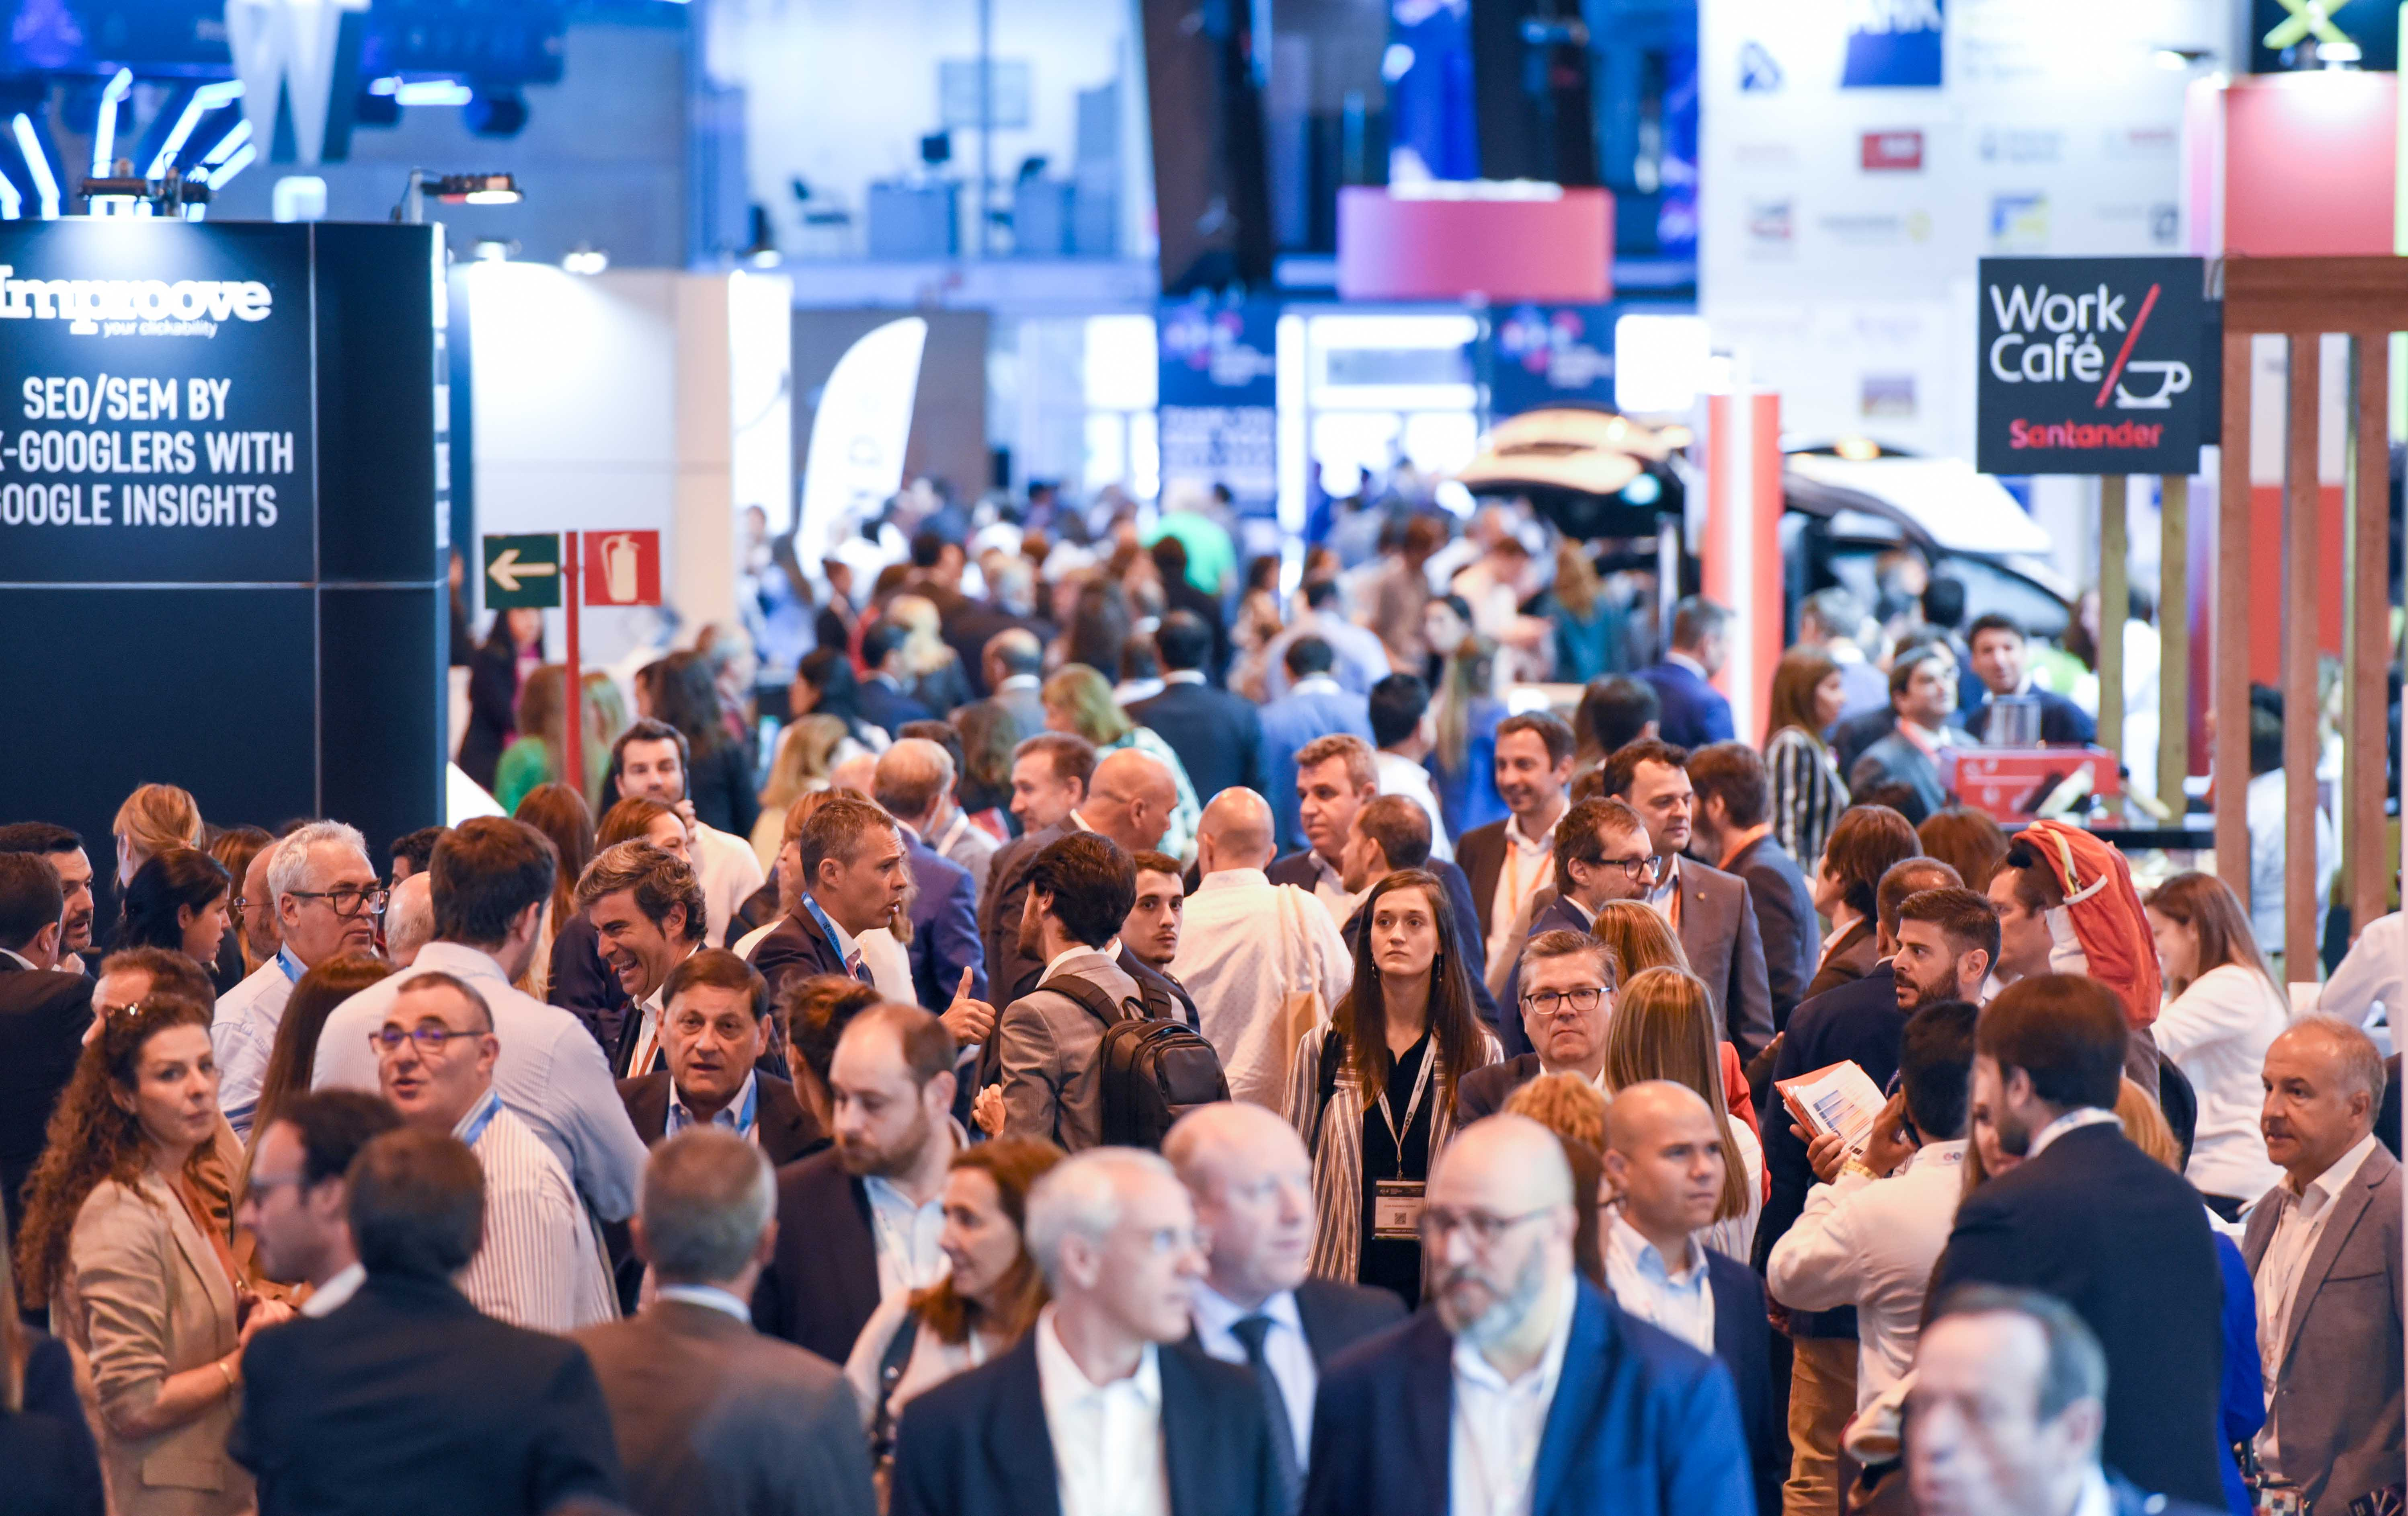 DES2019 become the must-attend event on digital transformation with 26,342 attendees from over 50 countries